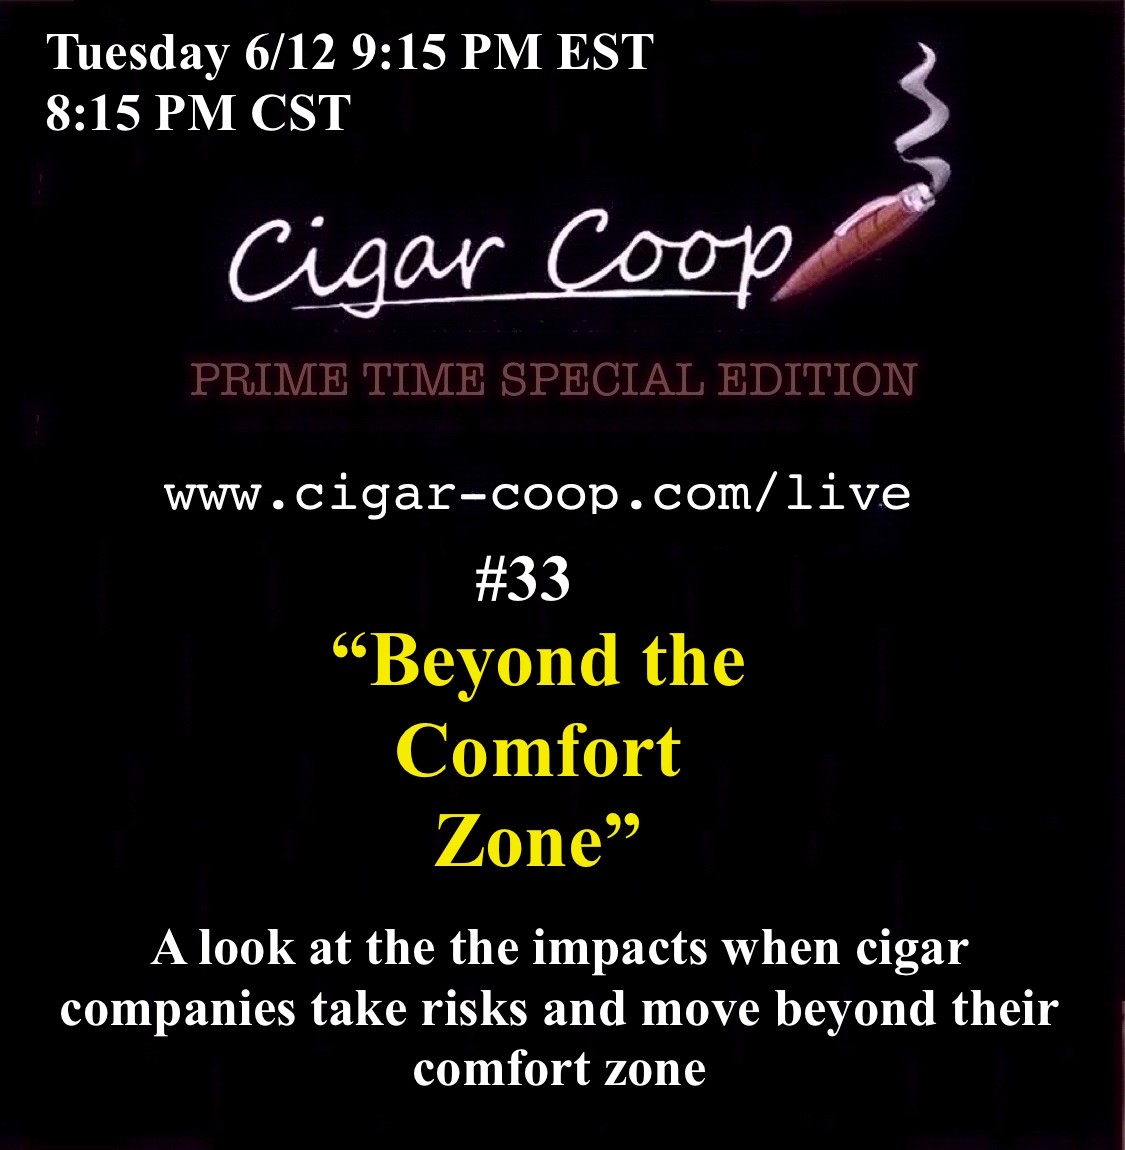 Announcement: Prime Time Special Edition #33 – Beyond the Comfort Zone Tues 6/12 9:15pm EST, 8:15pm CST